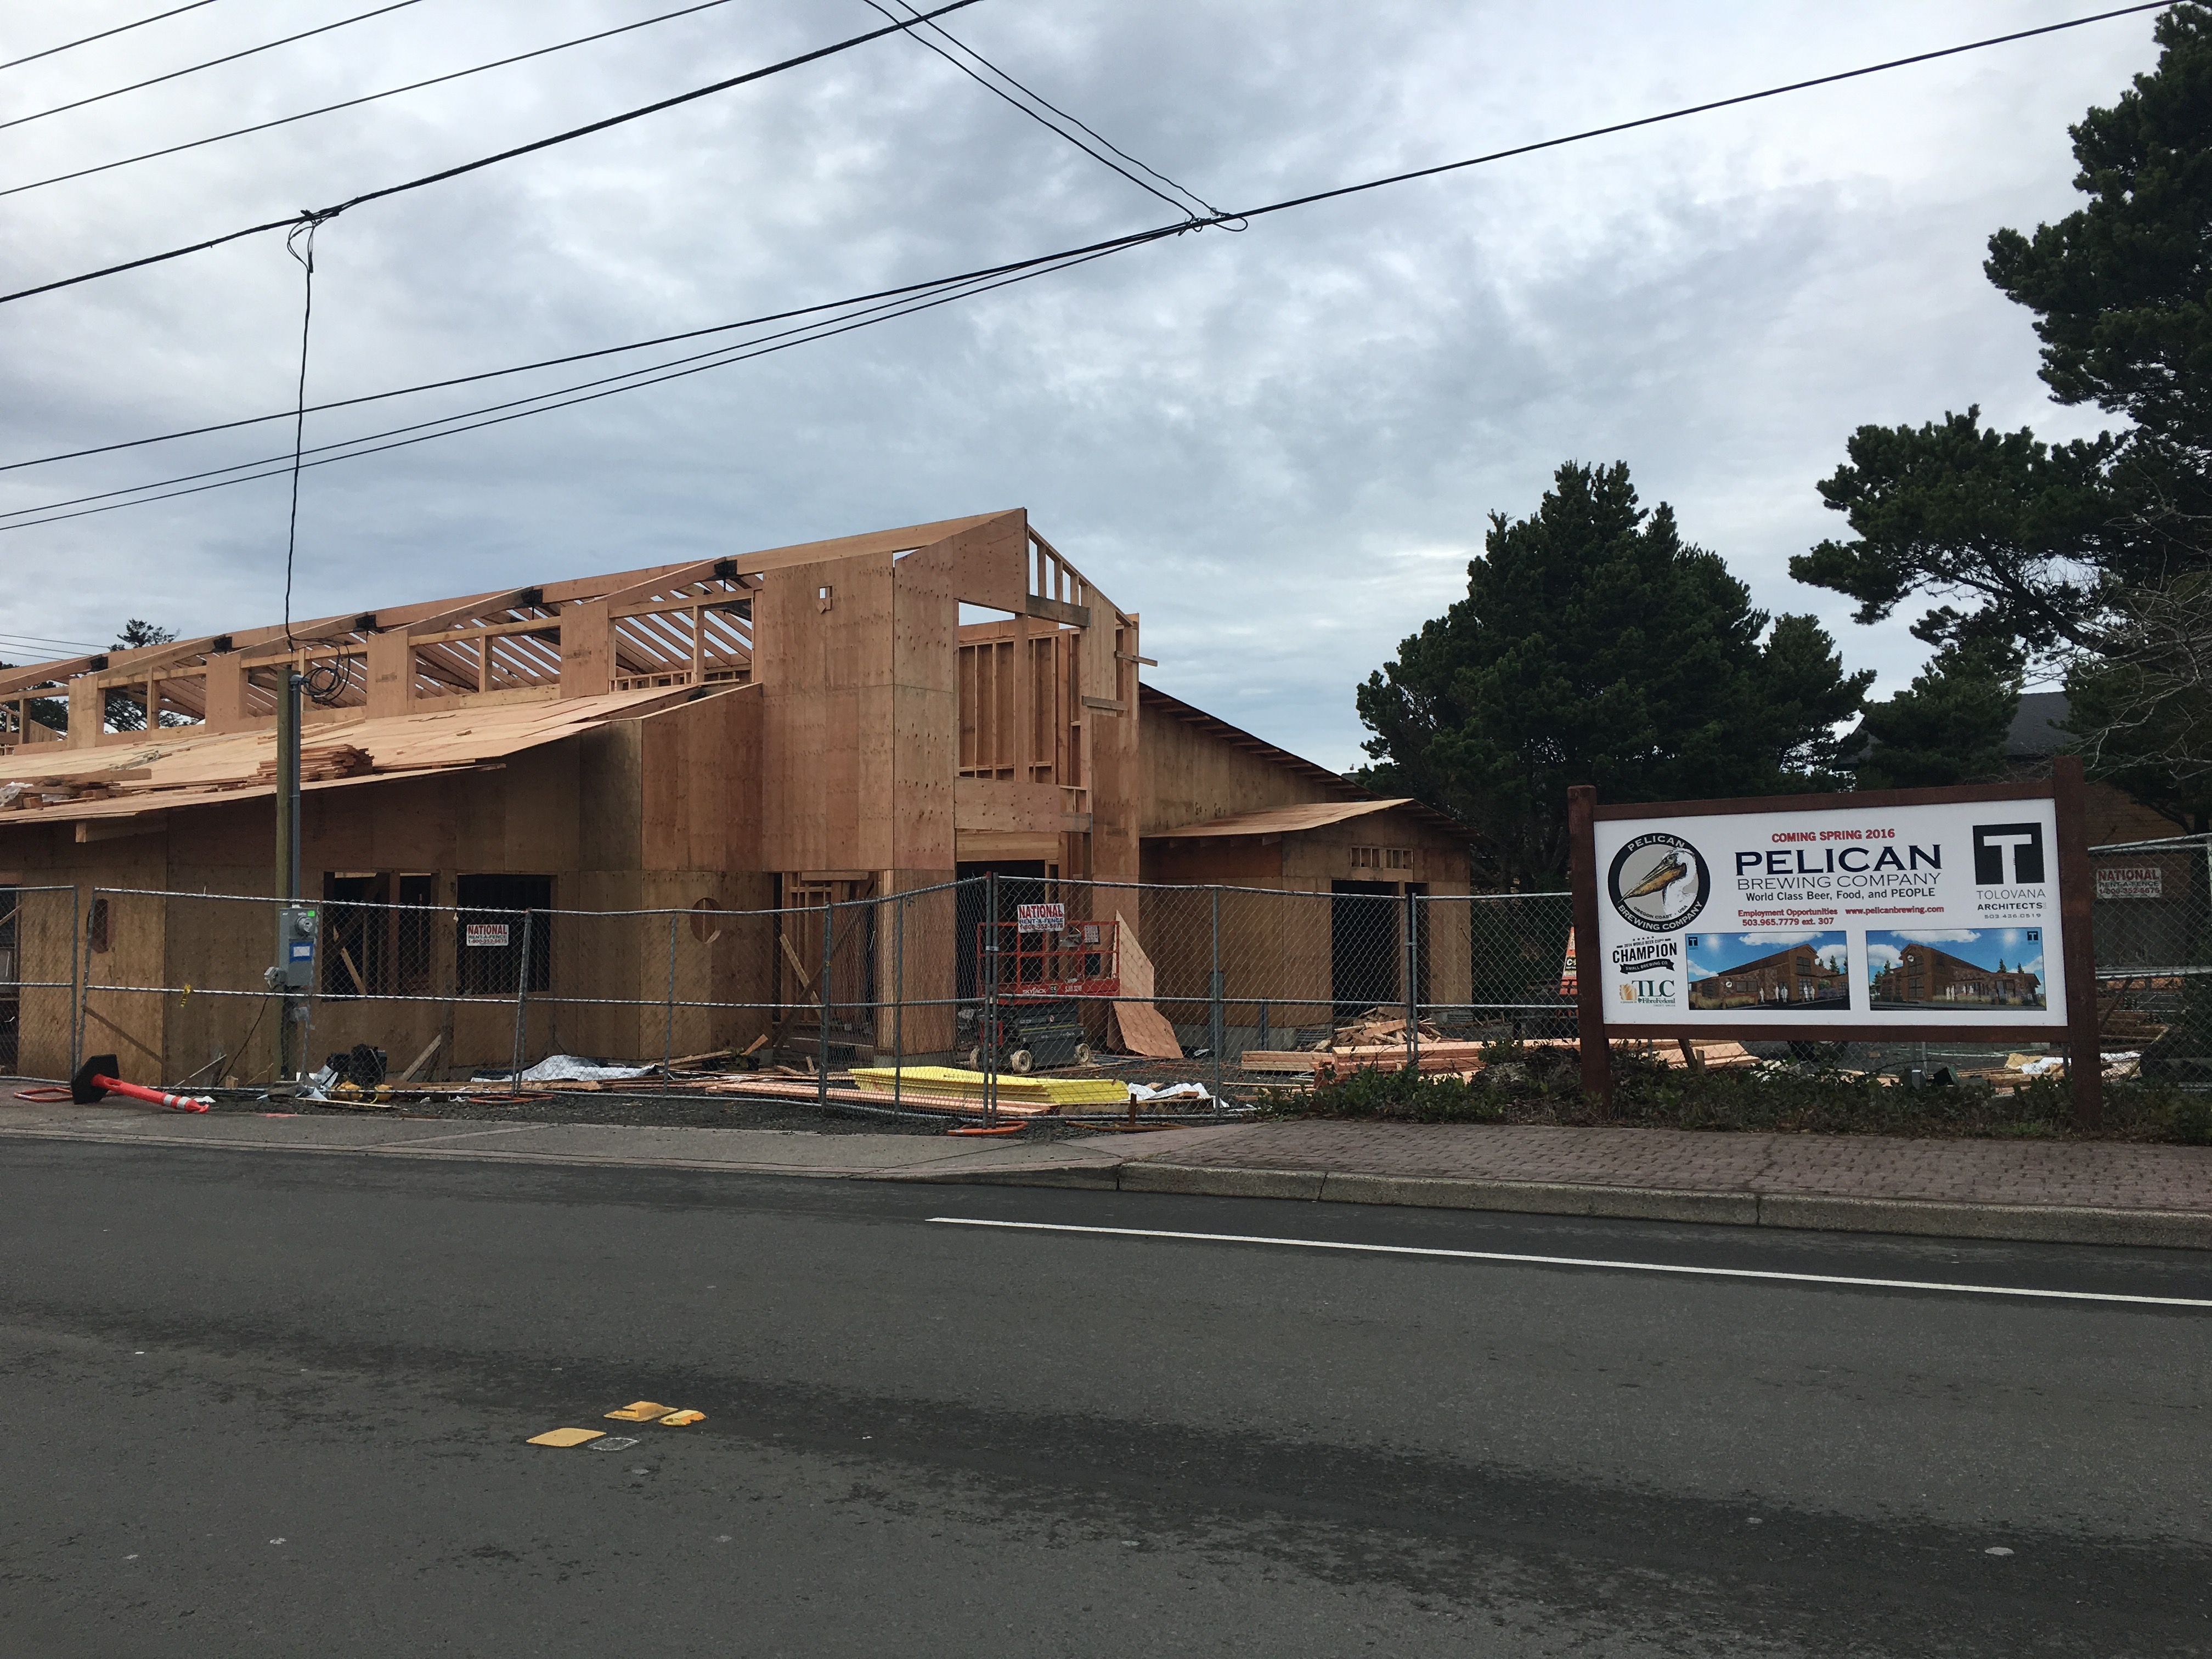 Construction of the new Pelican Brewing in Cannon Beach, OR